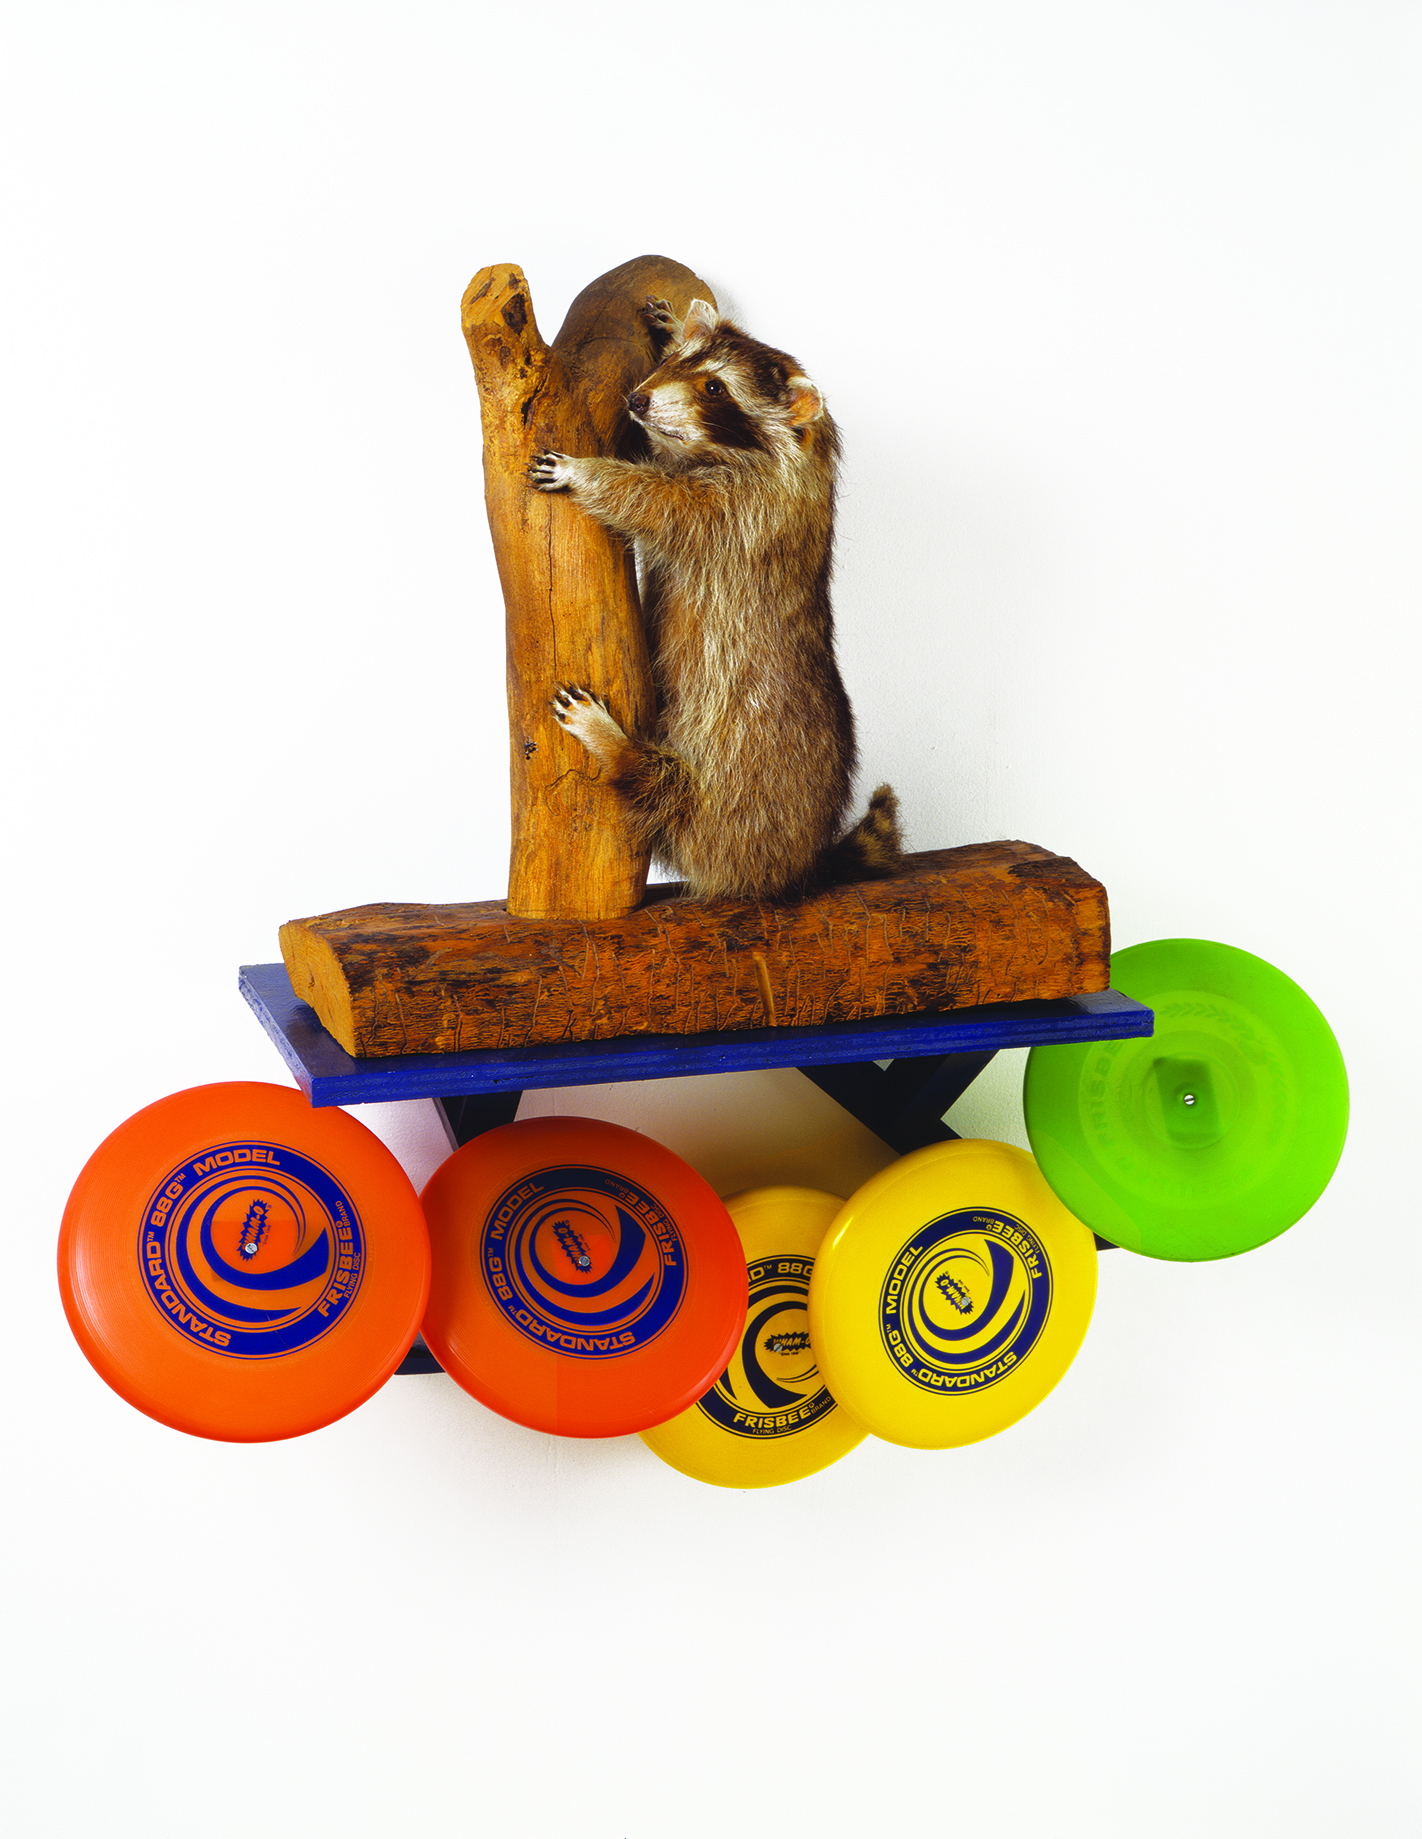 Shelf with Racoon , 1983, Painted wood shelf, plastic frisbees, stuffed raccoon mounted on wood, 33 x 34 x 11 ¼ in. (83.8 x 86.4 x 28.6 cm), Photo: David Lubarsky. Courtesy the artist and Tanya Bonakdar Gallery, New York / Los Angeles